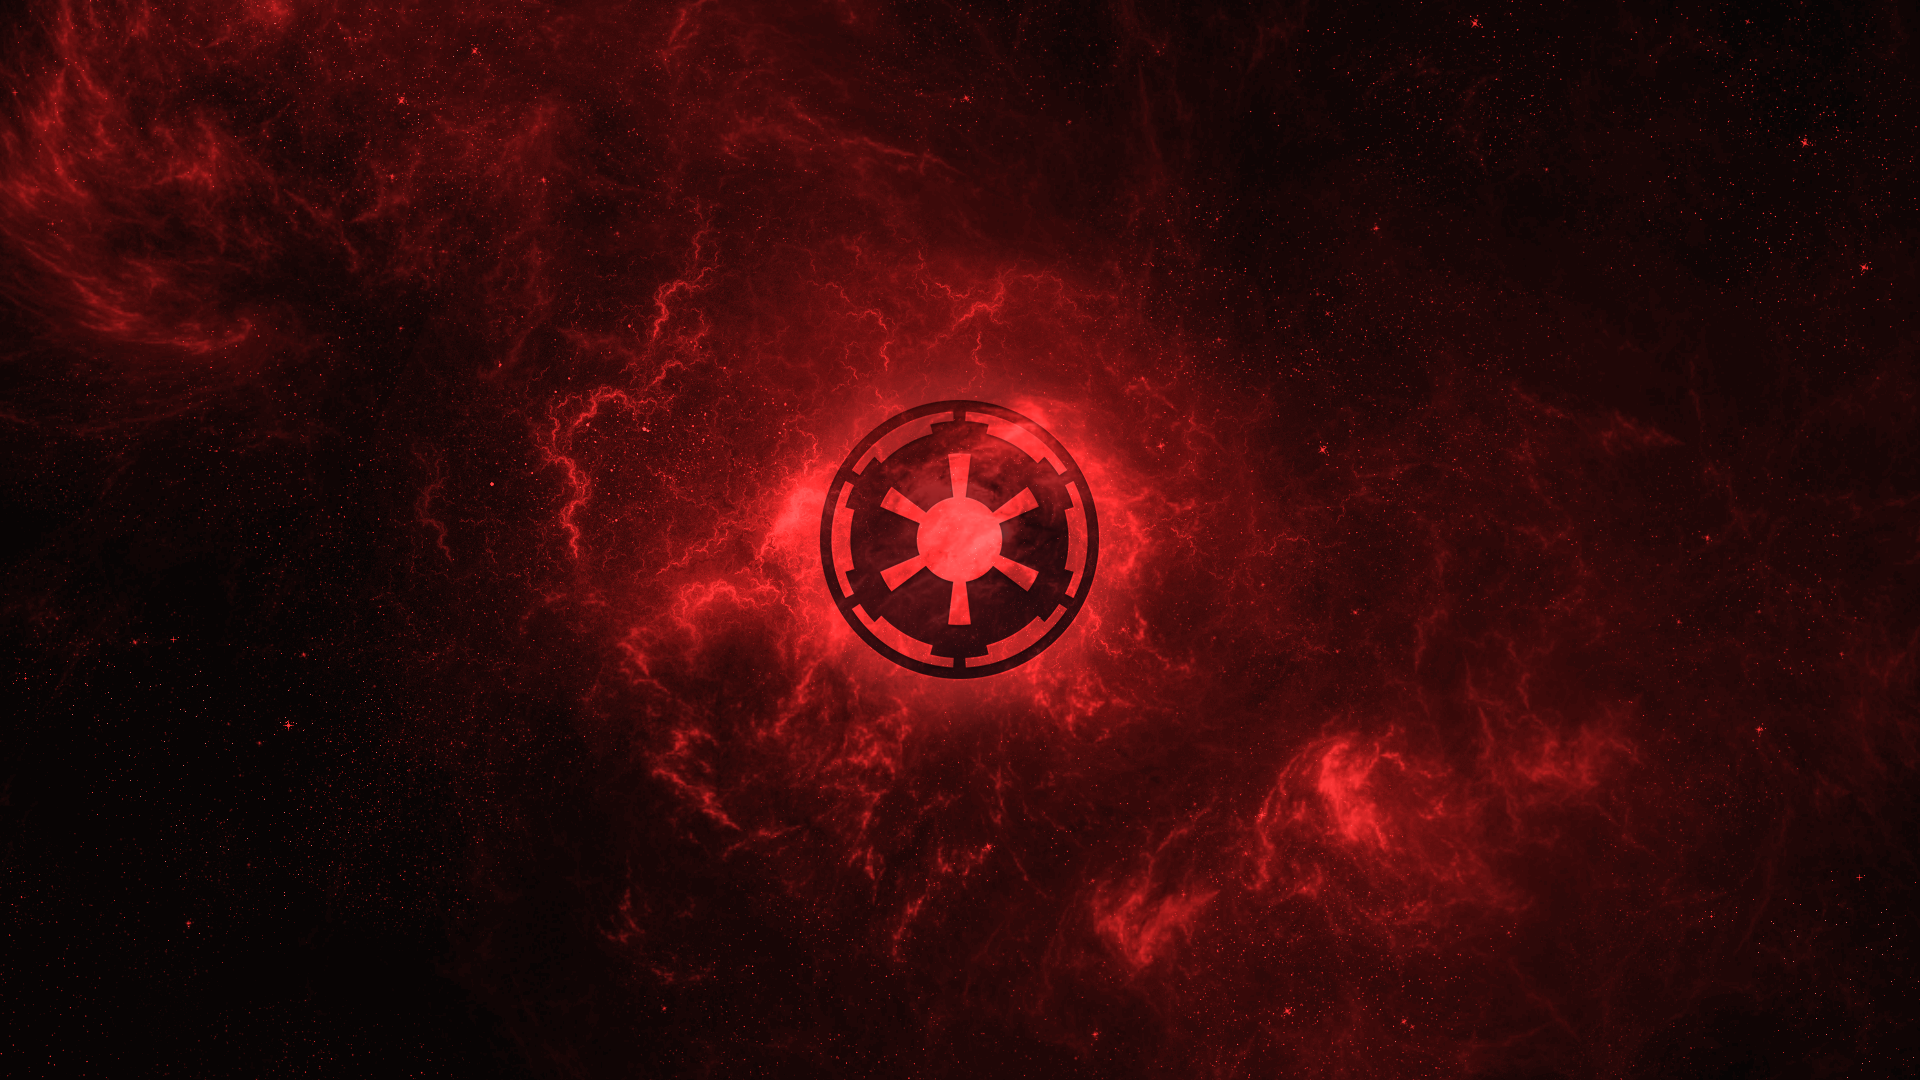 Star Wars Galactic Empire Wallpaper 1920 X 1080 Px By Tana Jo On